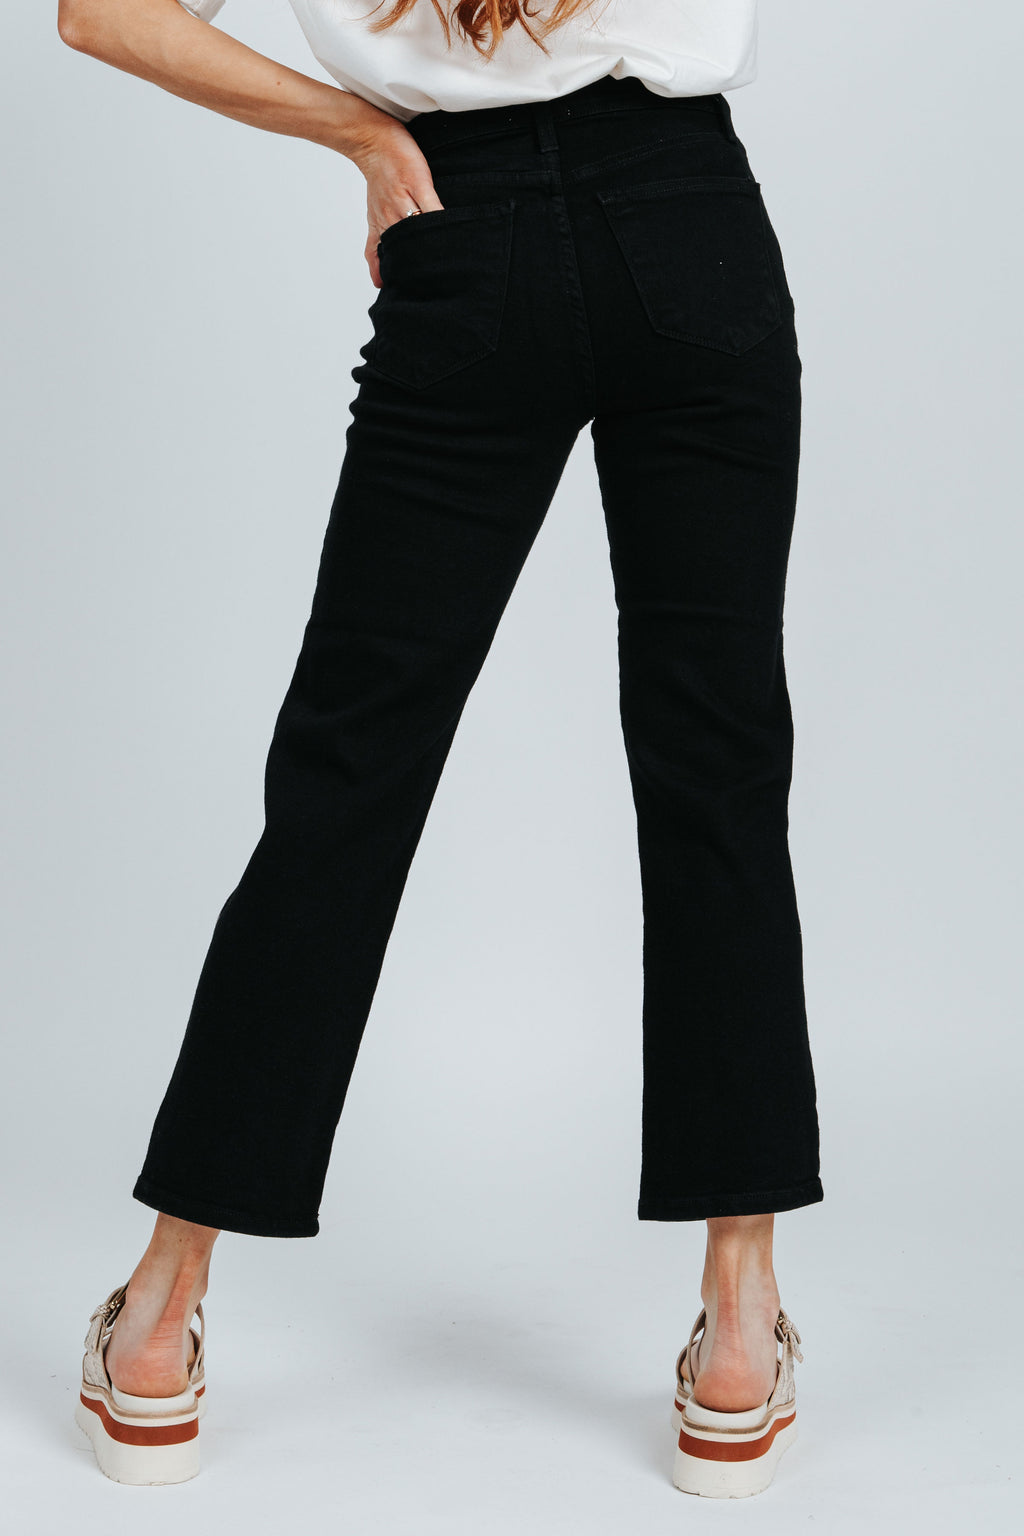 Letter To Juliet: The Siena High Rise Straight Jean in Black, studio shoot; back view